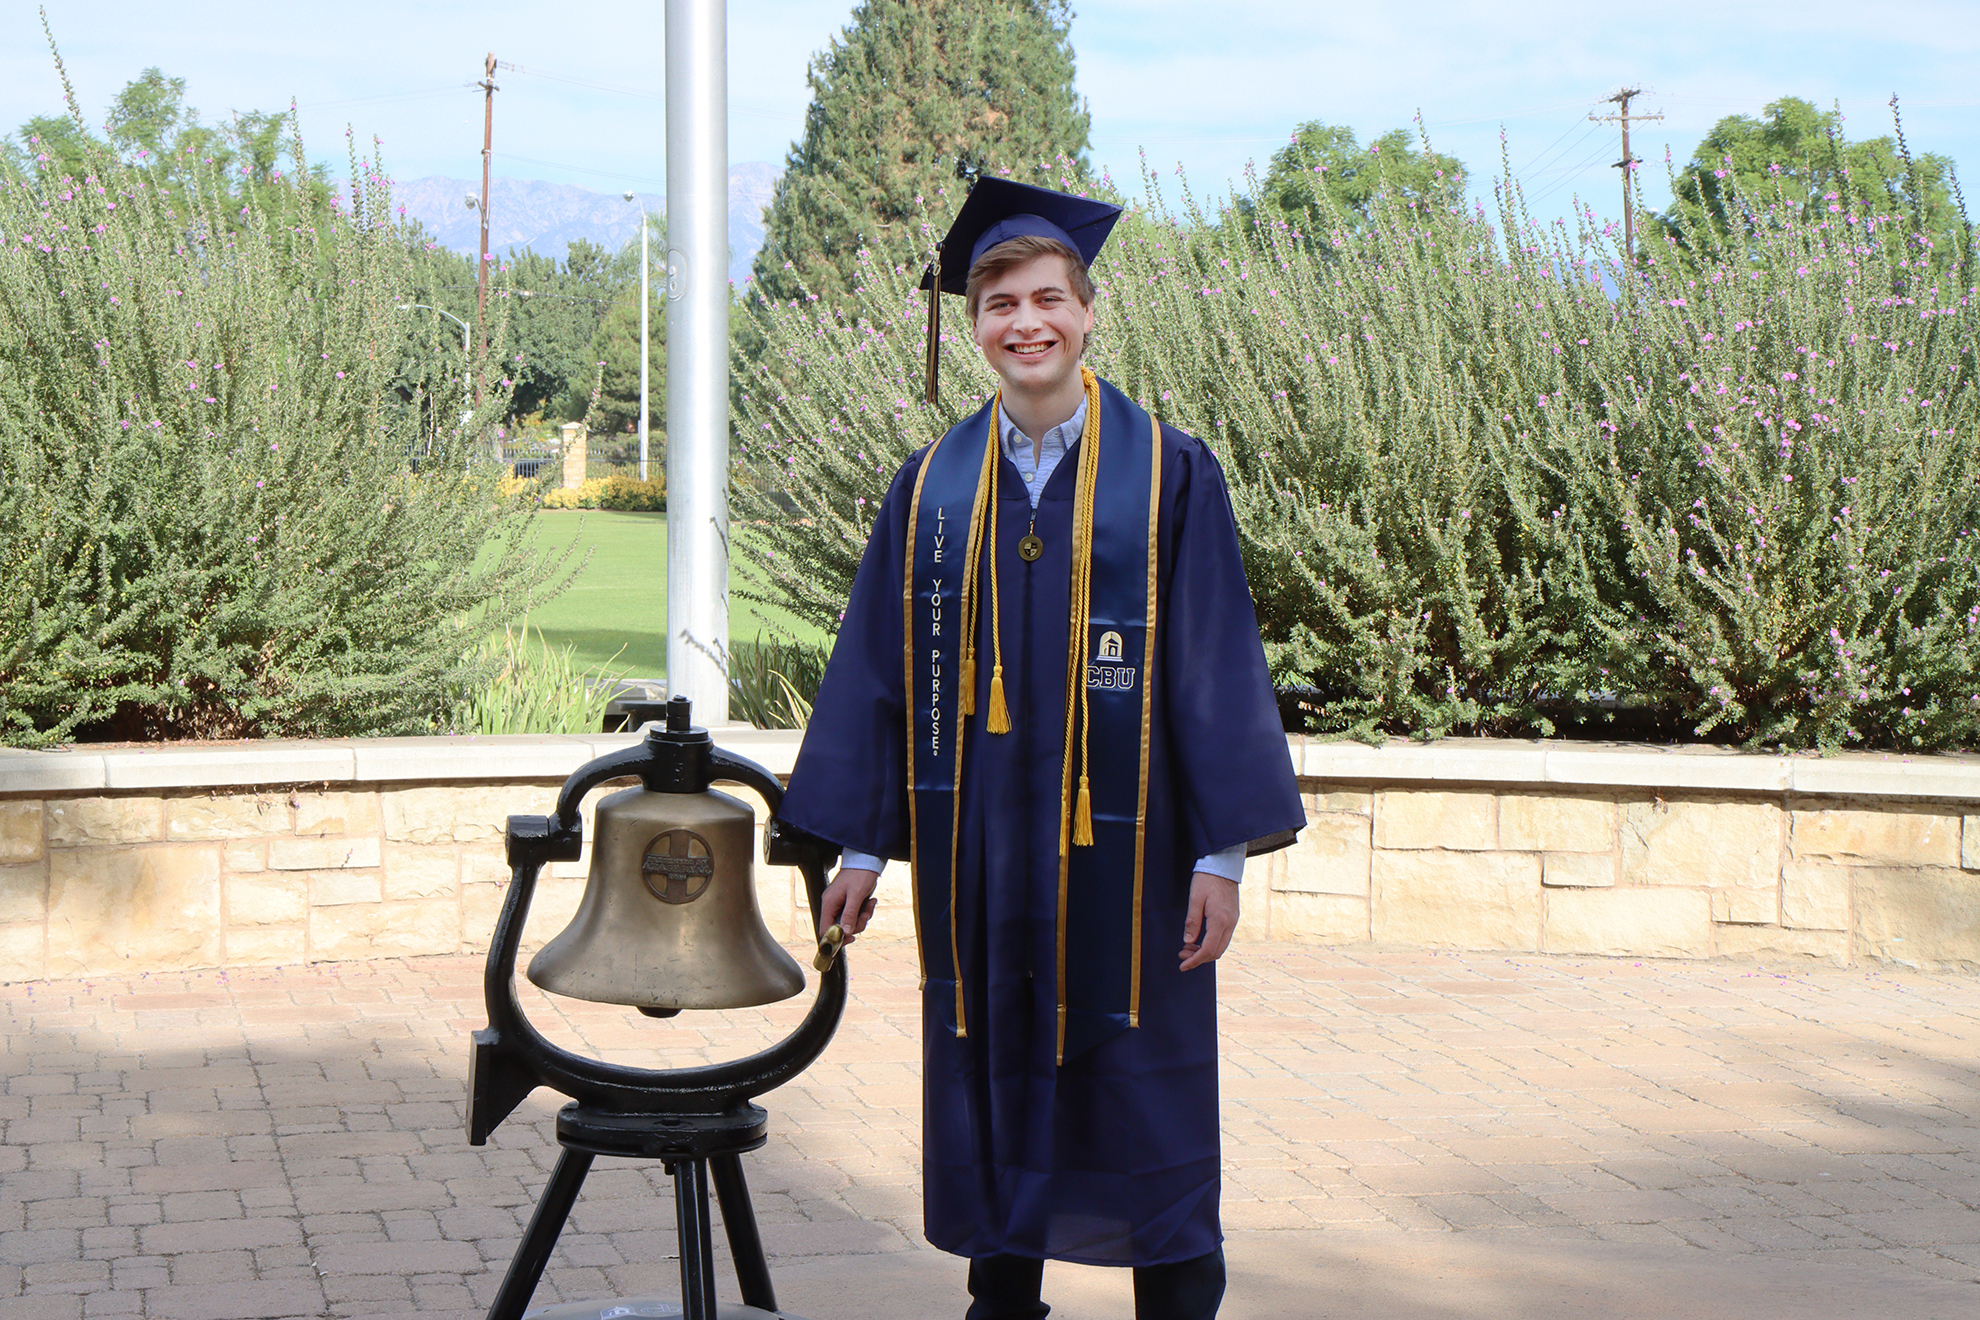 CBU commencement tradition continues with the ringing of the bell